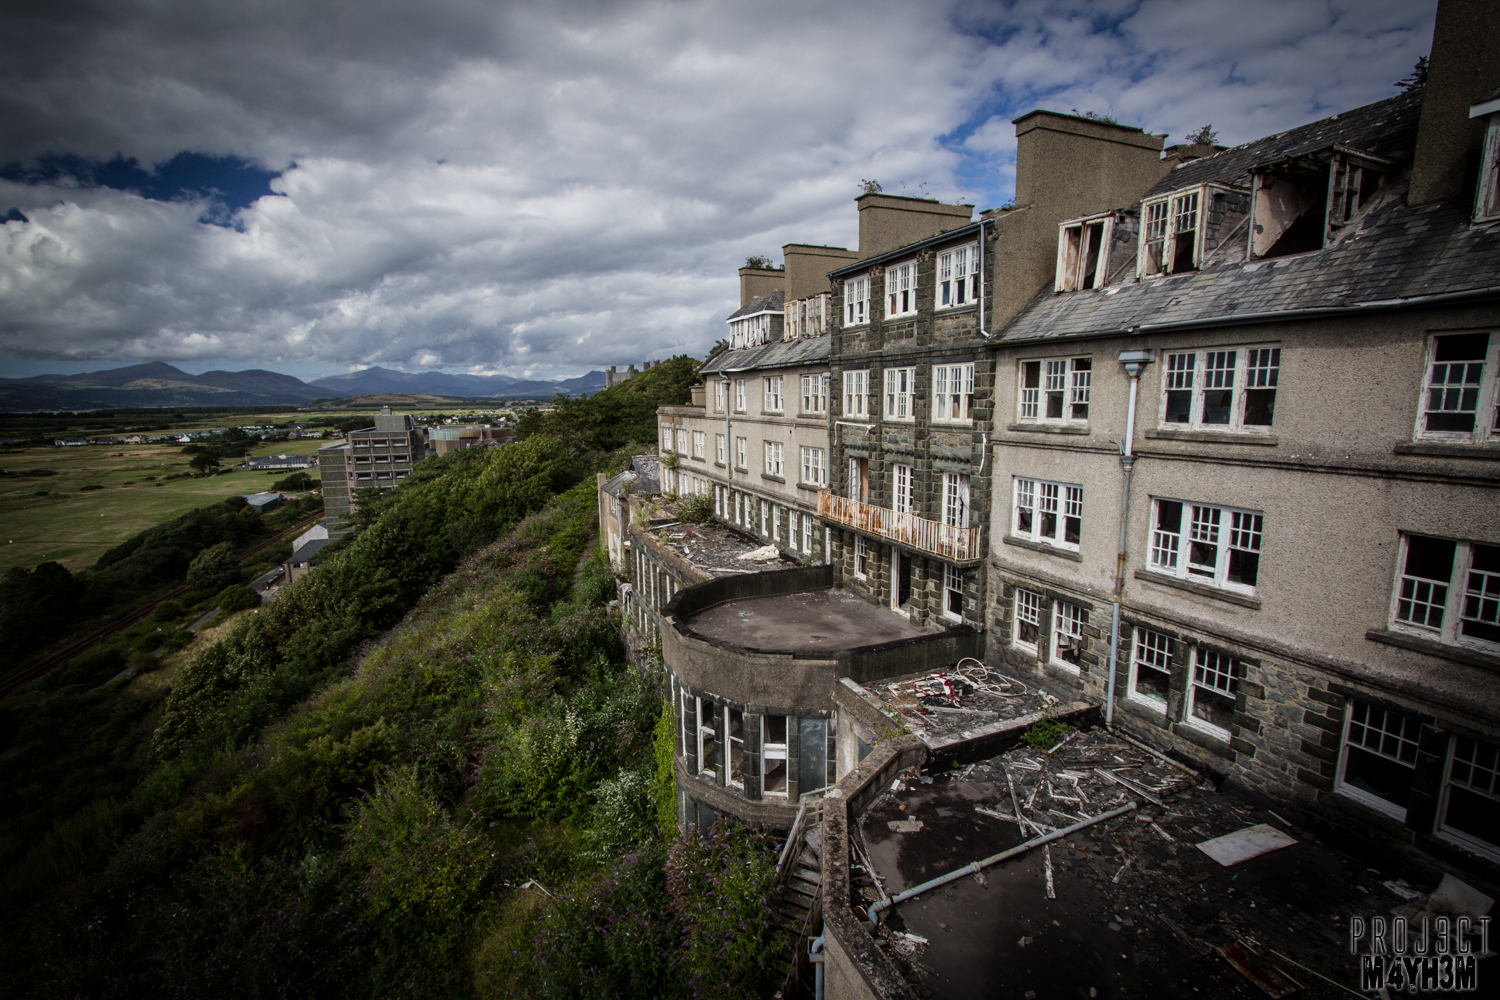 PROJ3CTM4YH3M Urban Exploration | Urbex: St David's Hotel ... 10 Most Beautiful Places In The World To Visit